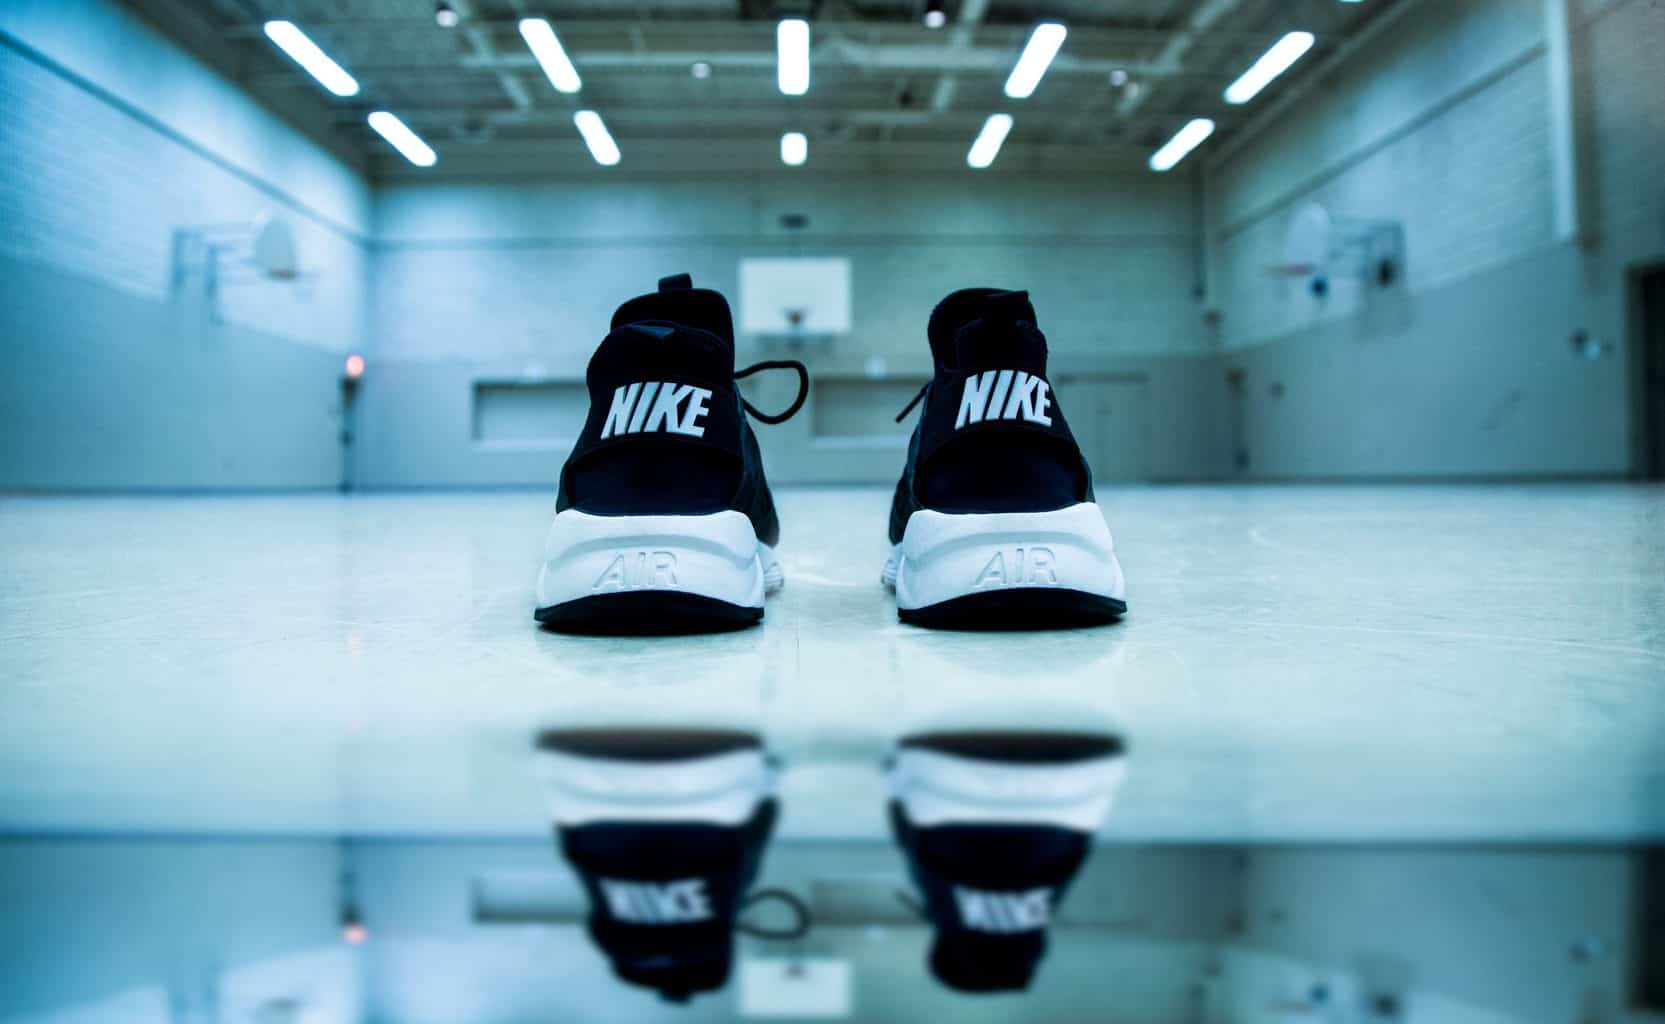 A pair of black Nike shoes placed on an empty gym floor